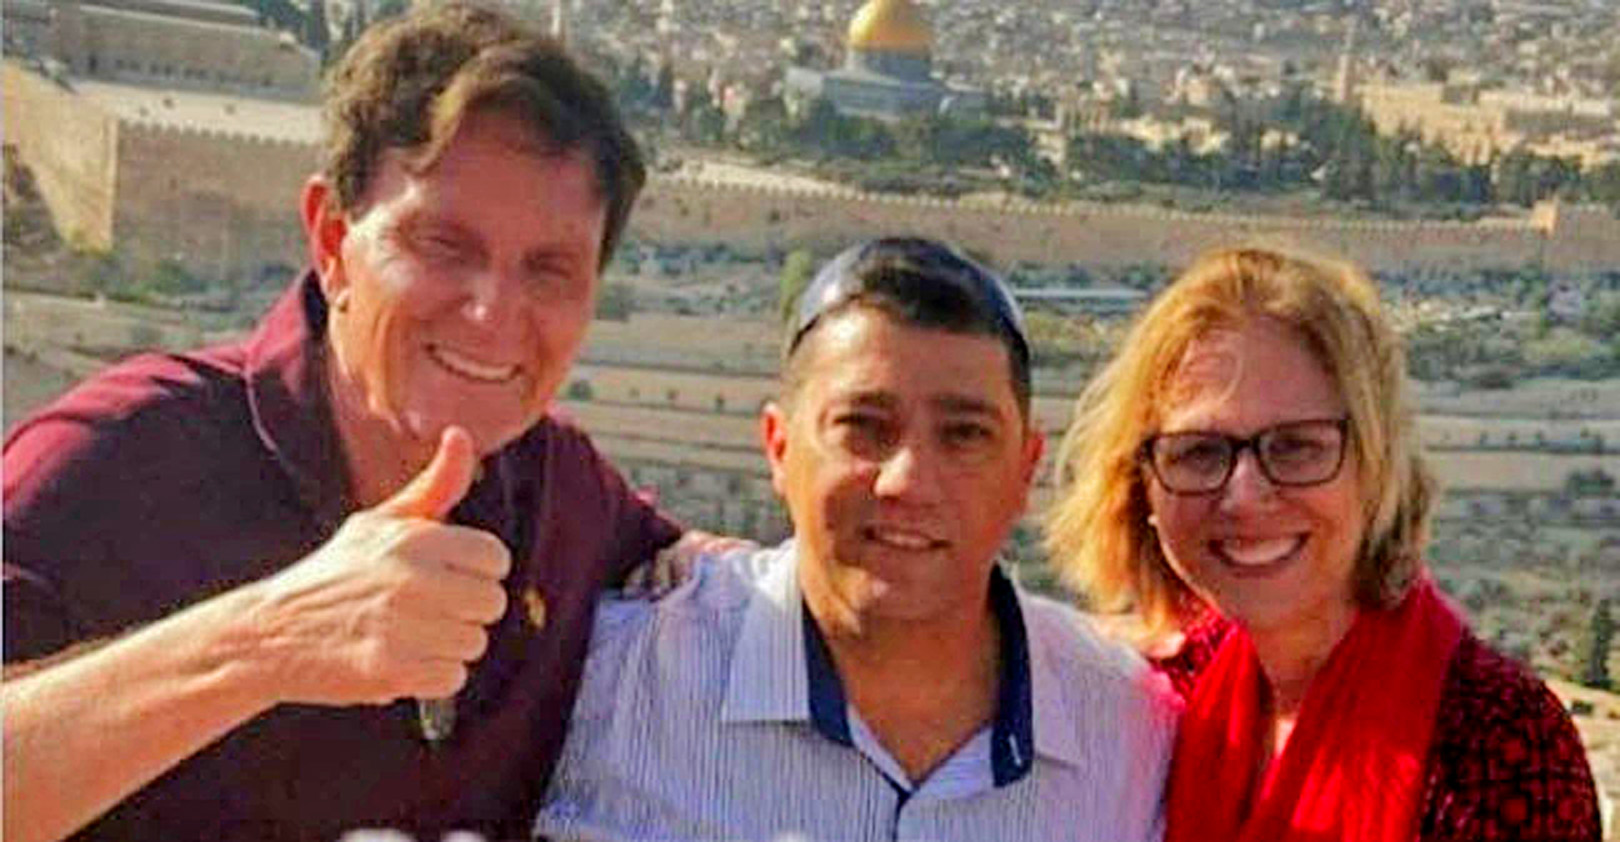 Crivella, l, and his wife, r, in Israel last week. Photo from Facebook